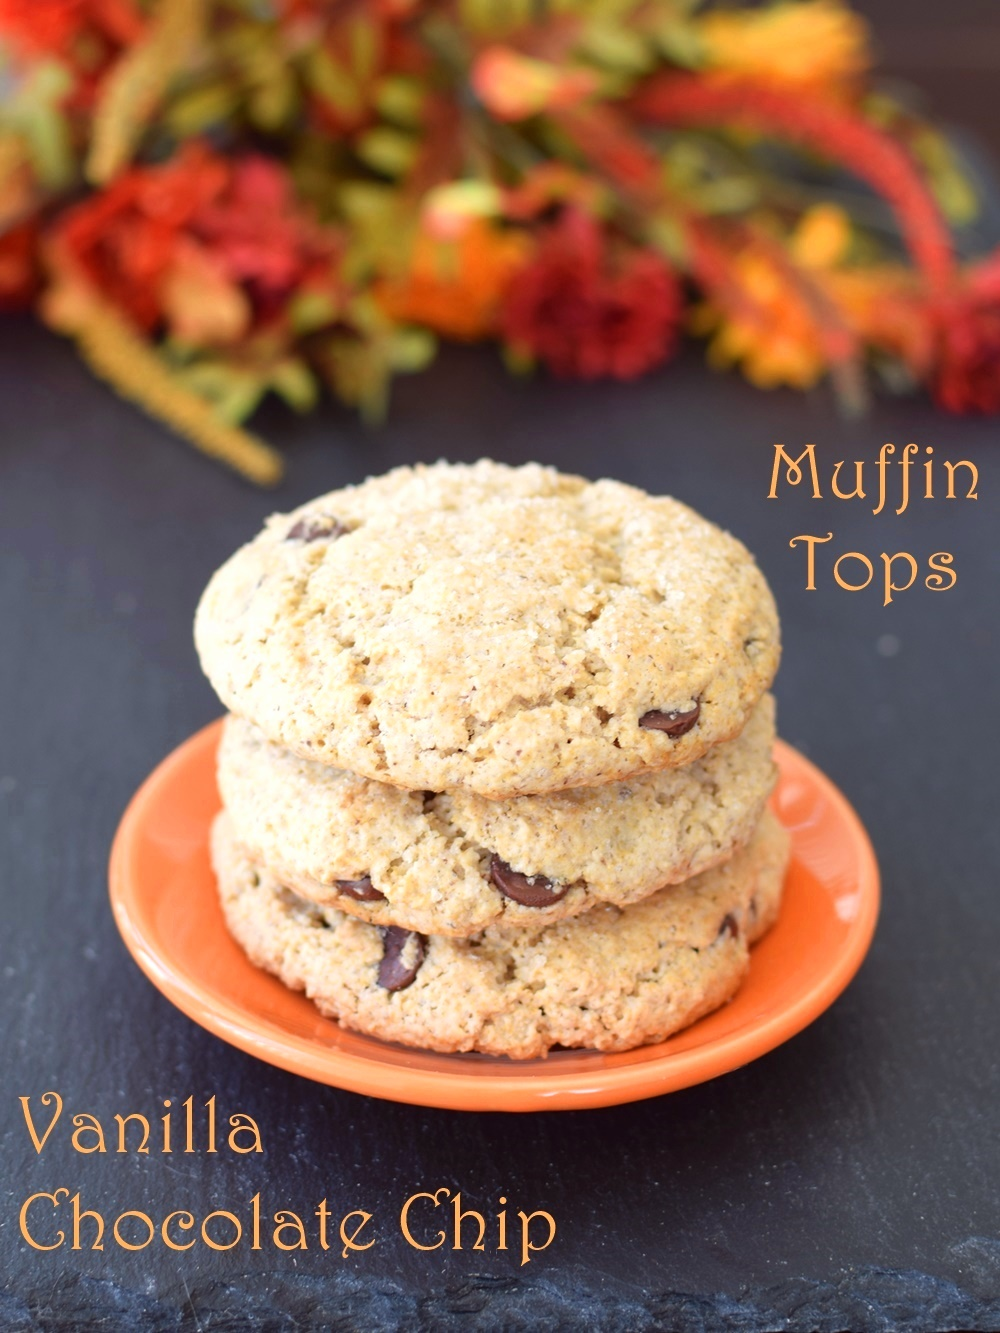 Vanilla Chocolate Chip Muffin Tops!! Crisp on top with a lightly tender middle, and no special pan required! A naturally dairy-free, gluten-free, vegan recipe via GoDairyFree.org / @GoDairyFree